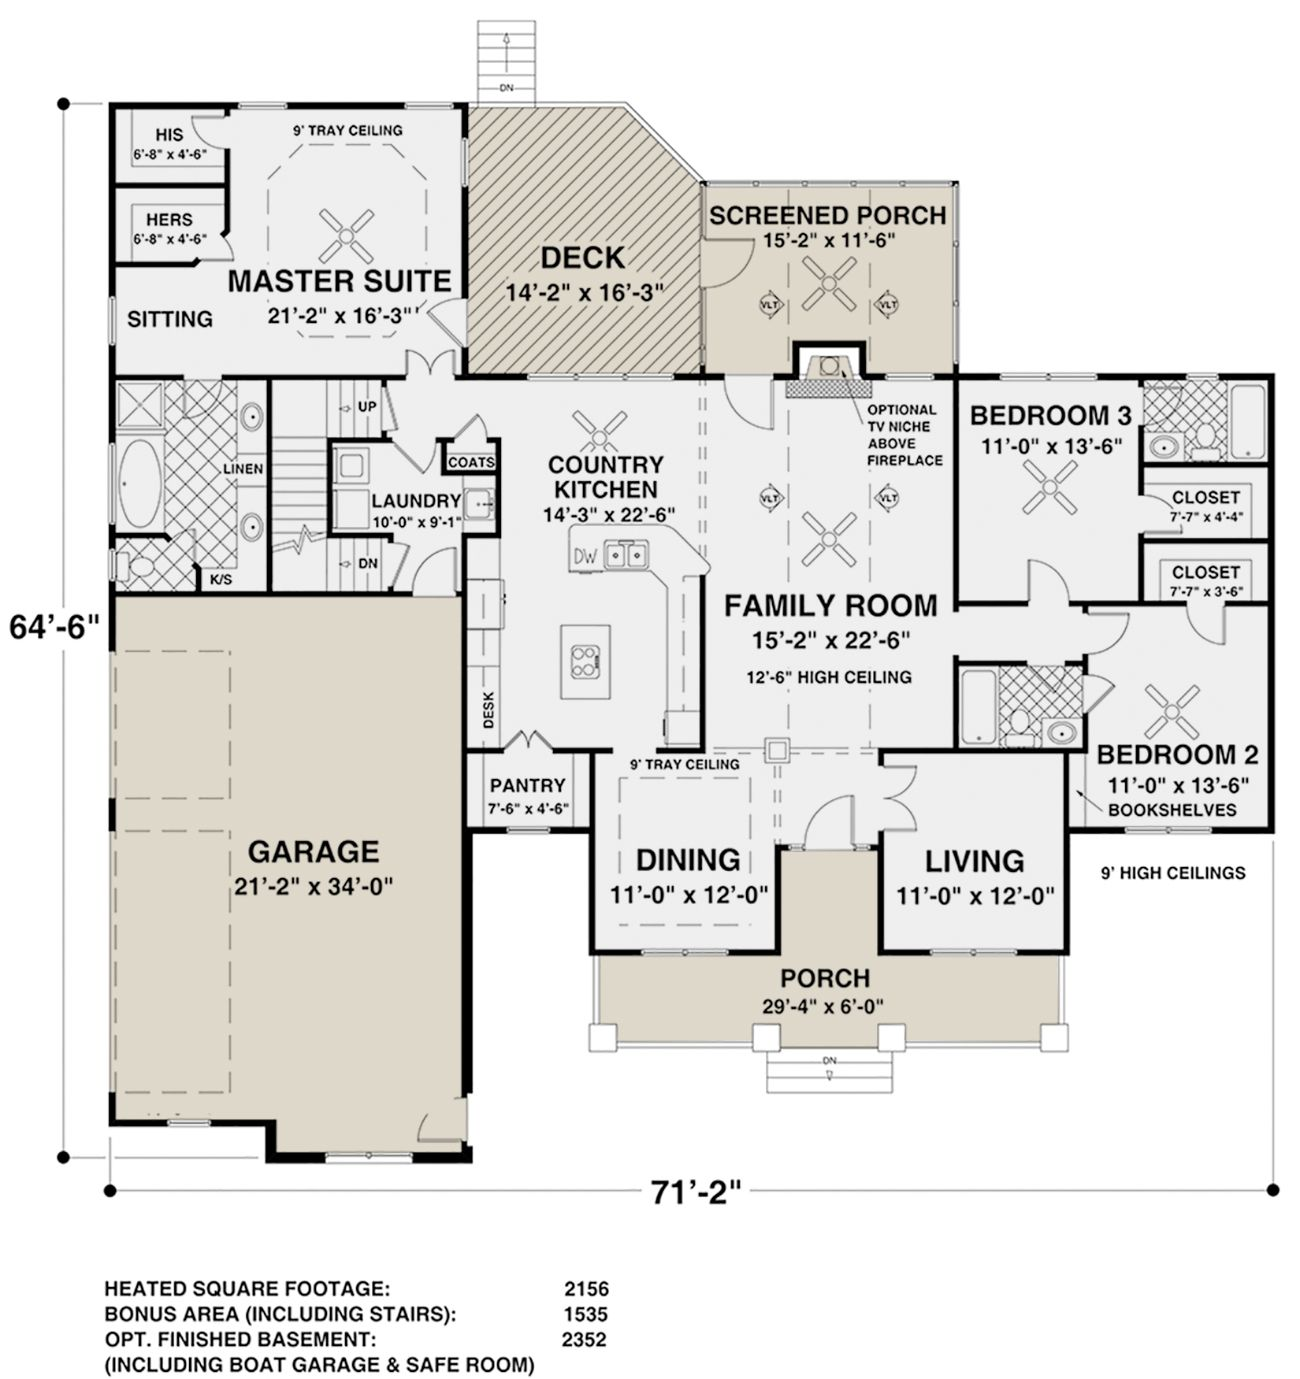 House Plan 036 00243 Country Plan 2 156 Square Feet 3 Bedrooms 3 Bathrooms Basement House Plans Ranch Style House Plans Ranch House Plan